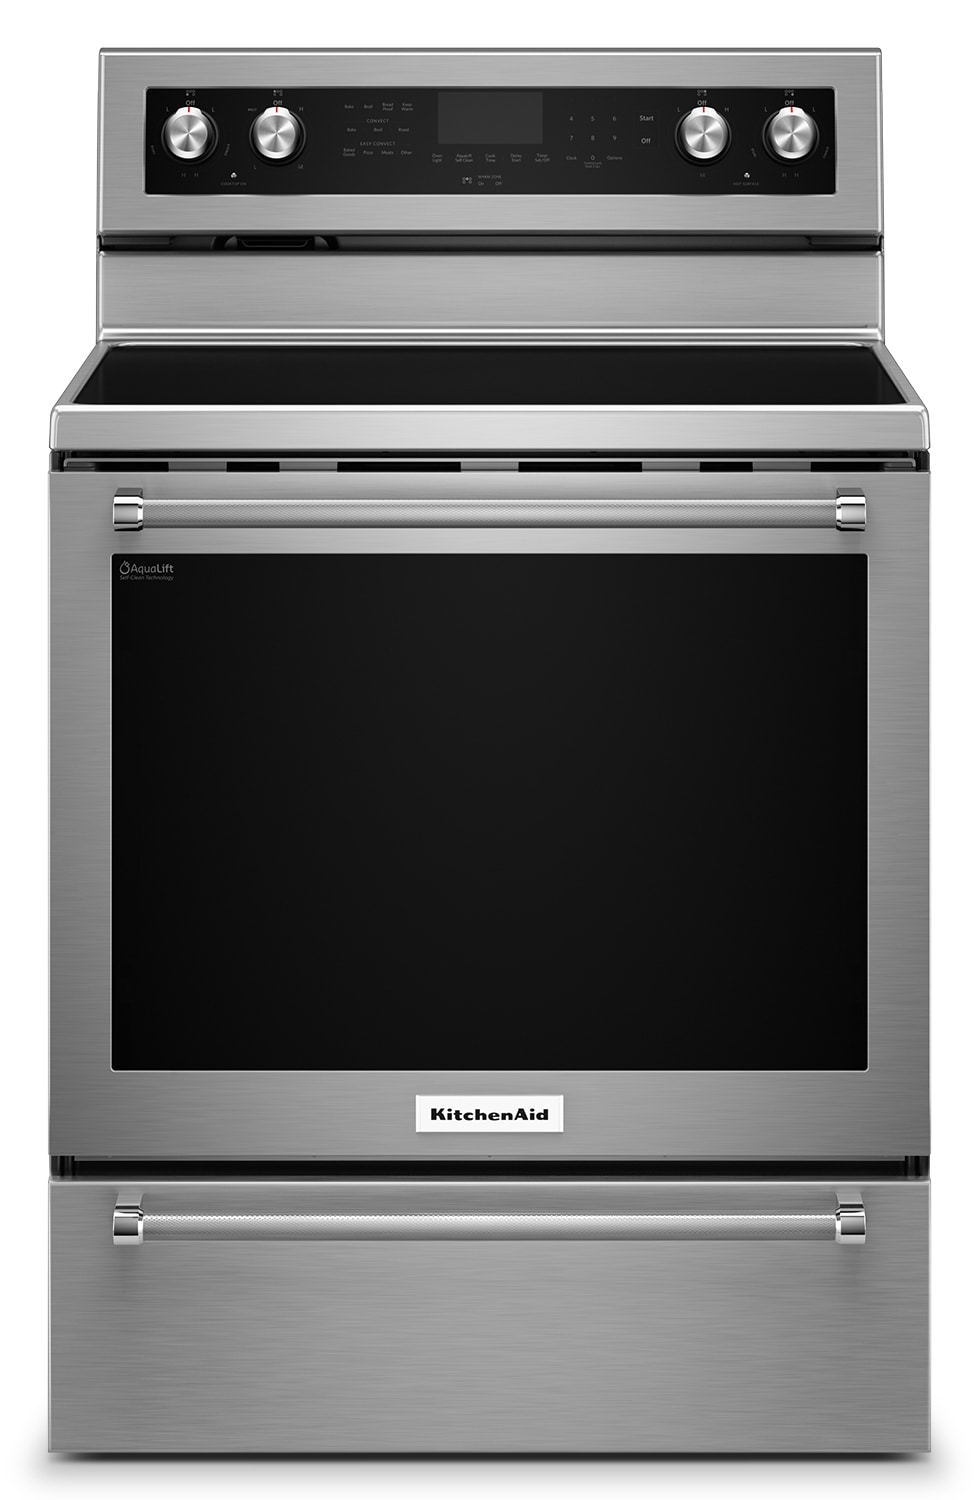 Cooking Products - KitchenAid 6.4 Cu. Ft. Freestanding Electric Range – YKFEG510ESS